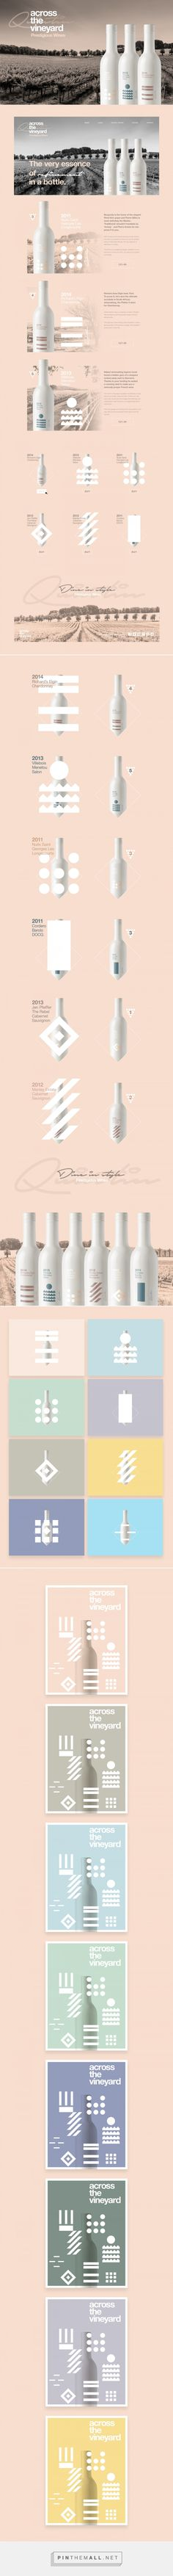 Across the Vineyard Wine Branding and Packaging by Studio-JQ | Fivestar Branding – Design and Branding Agency & Inspiration Gallery